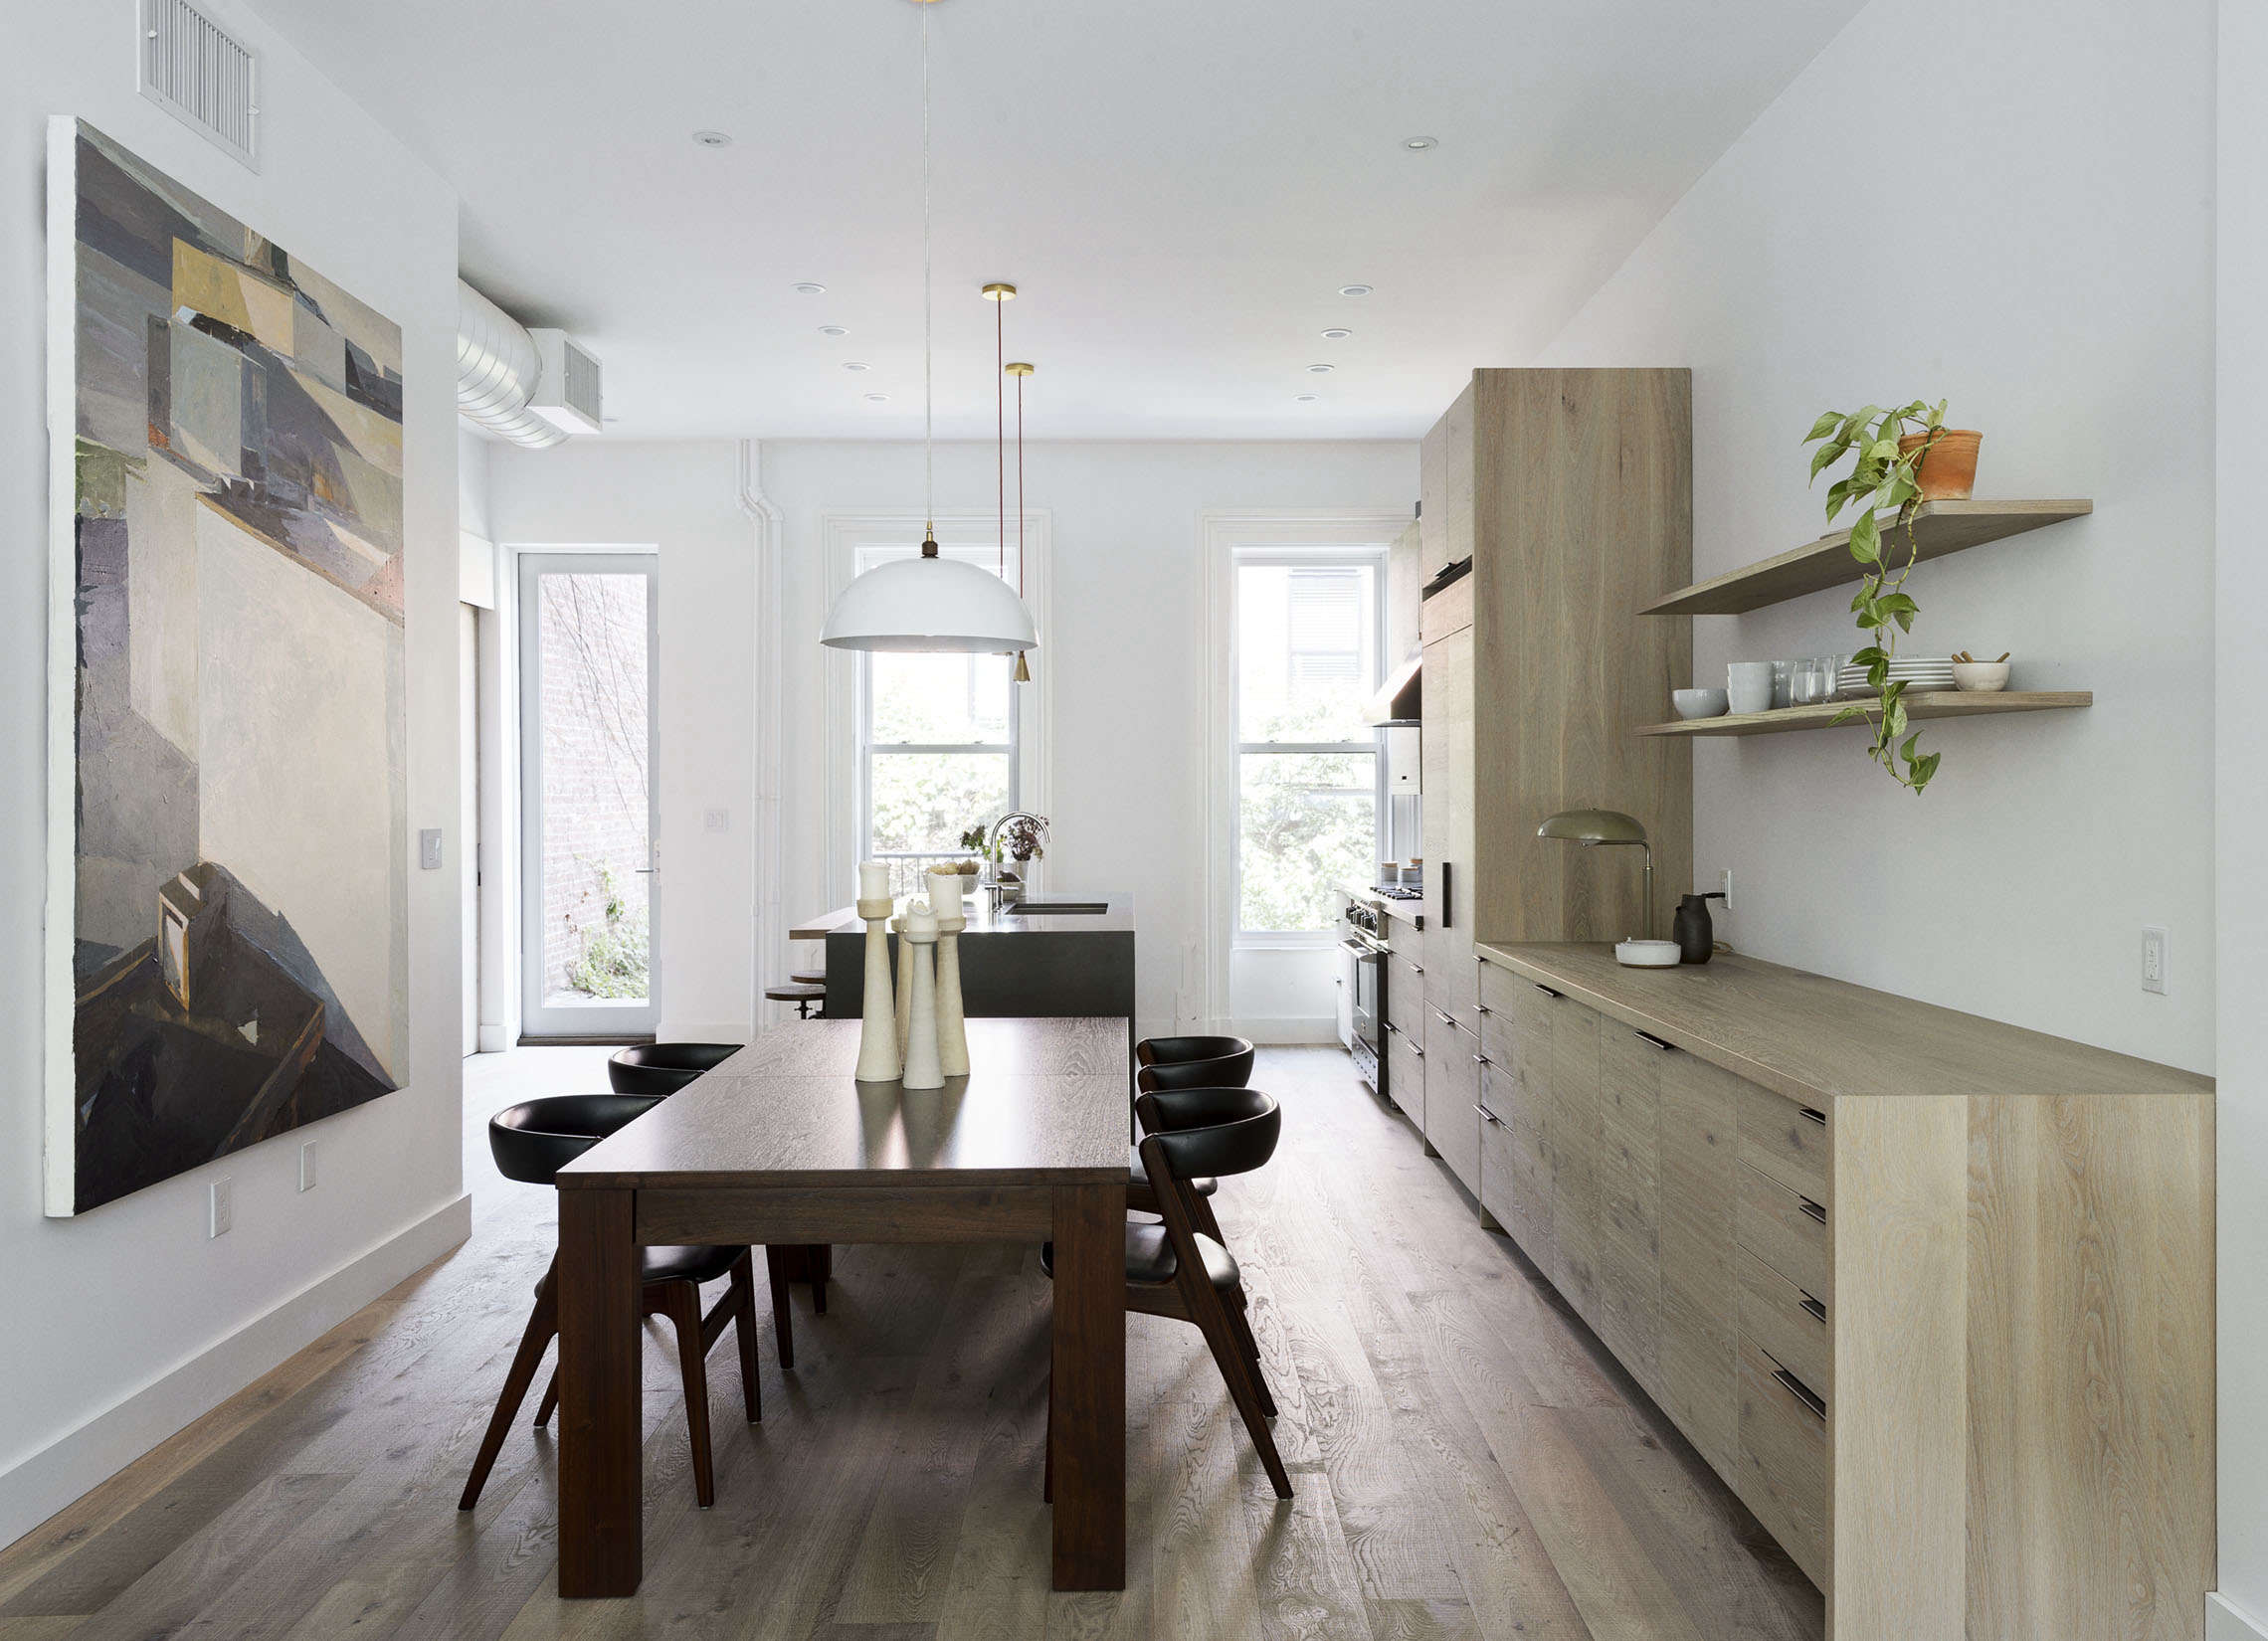 Dining area in a Brooklyn kitchen remodel with custom oak cabinets, design by Workstead, Matthew Williams photo | Remodelista